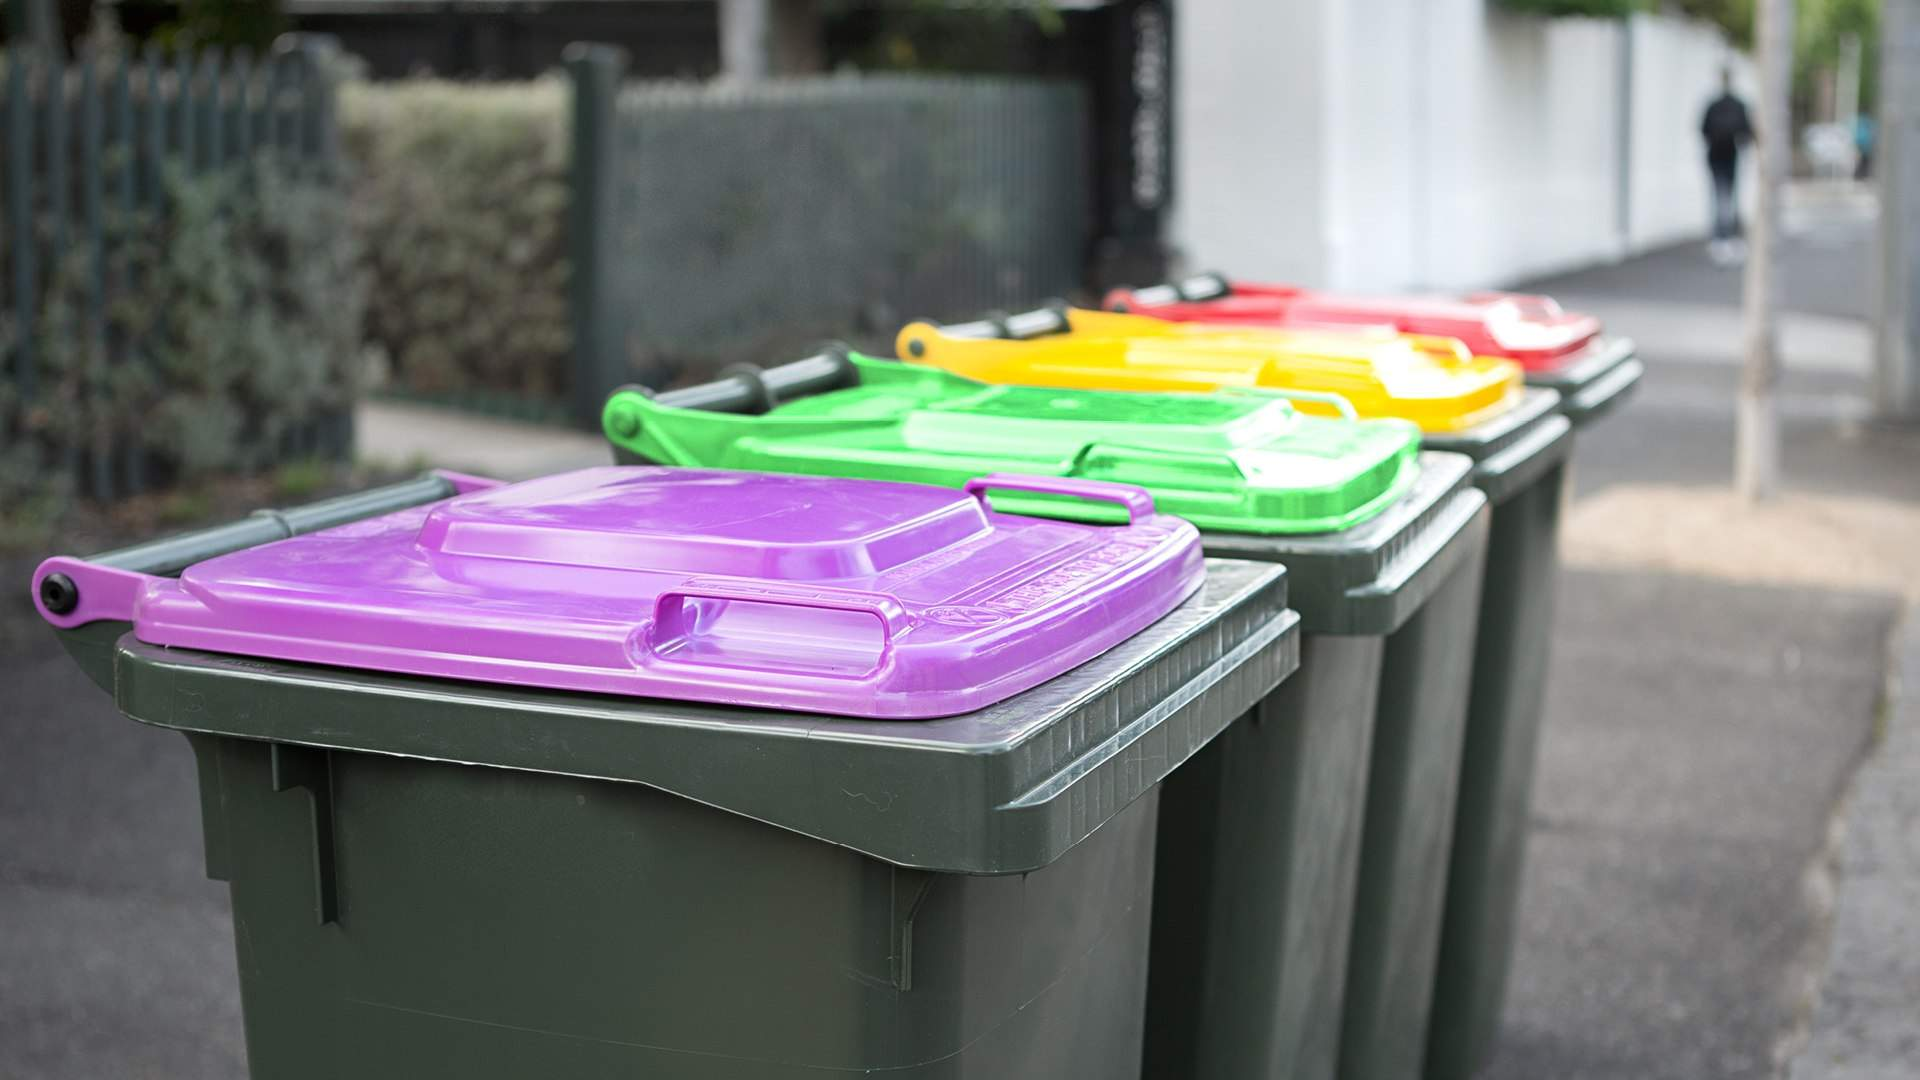 The Victorian Government Is Dropping $1 Million to Prepare Residents for Its Four-Bin Recycling System Rollout